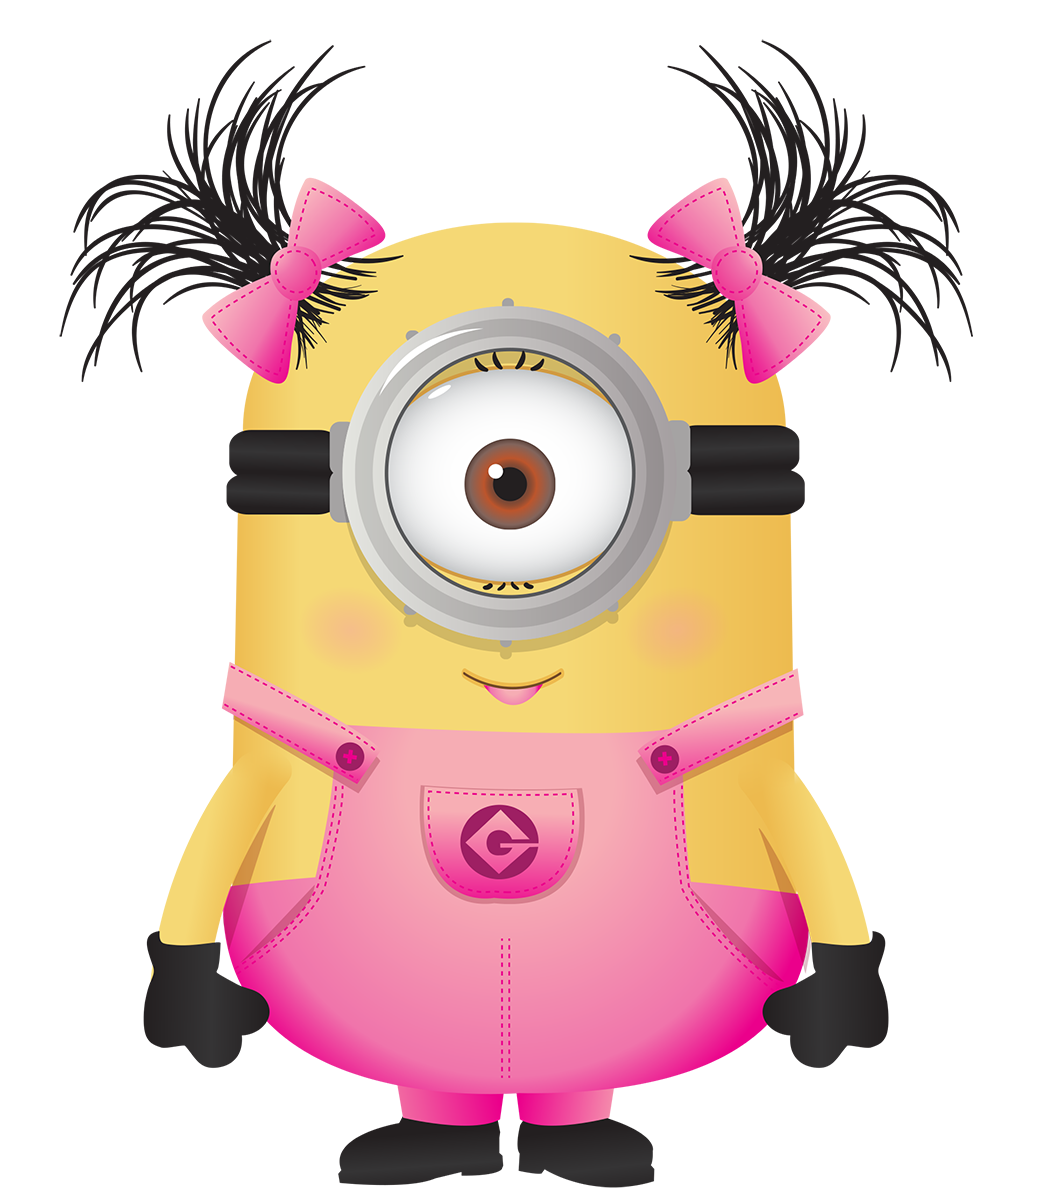 Bob the minion stuart. Minions clipart edition